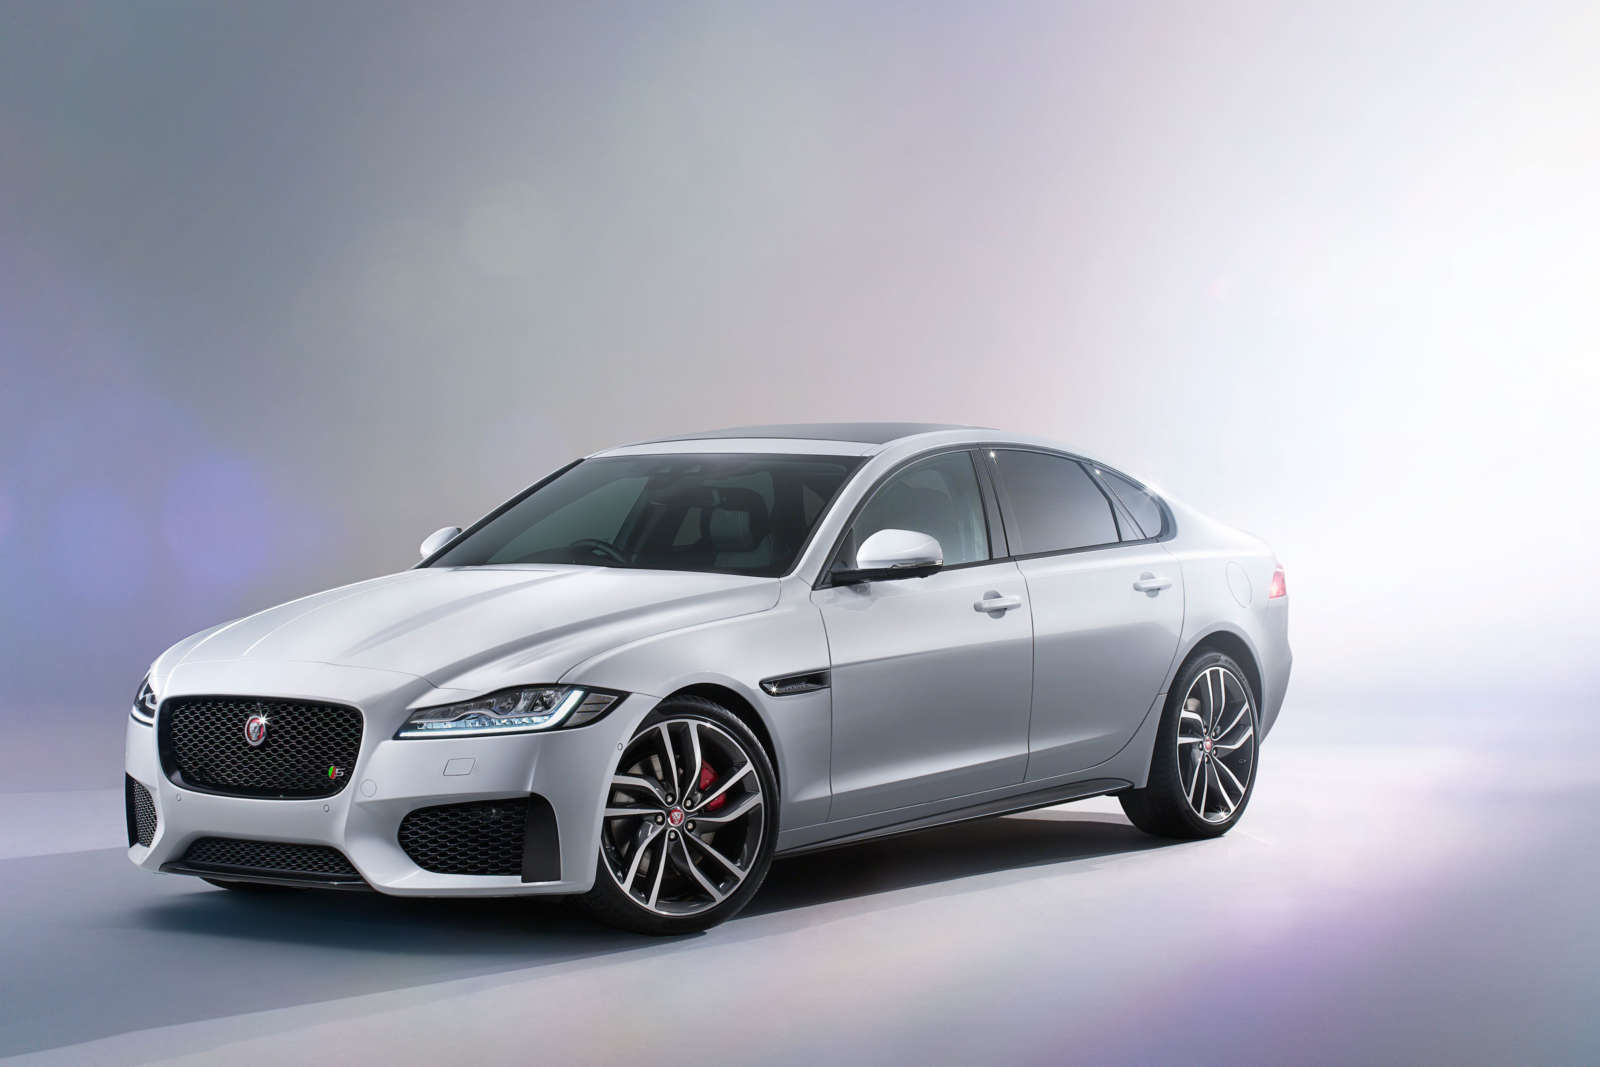 rumour mill 2016 jaguar xf to launch in india this month motoroids. Black Bedroom Furniture Sets. Home Design Ideas